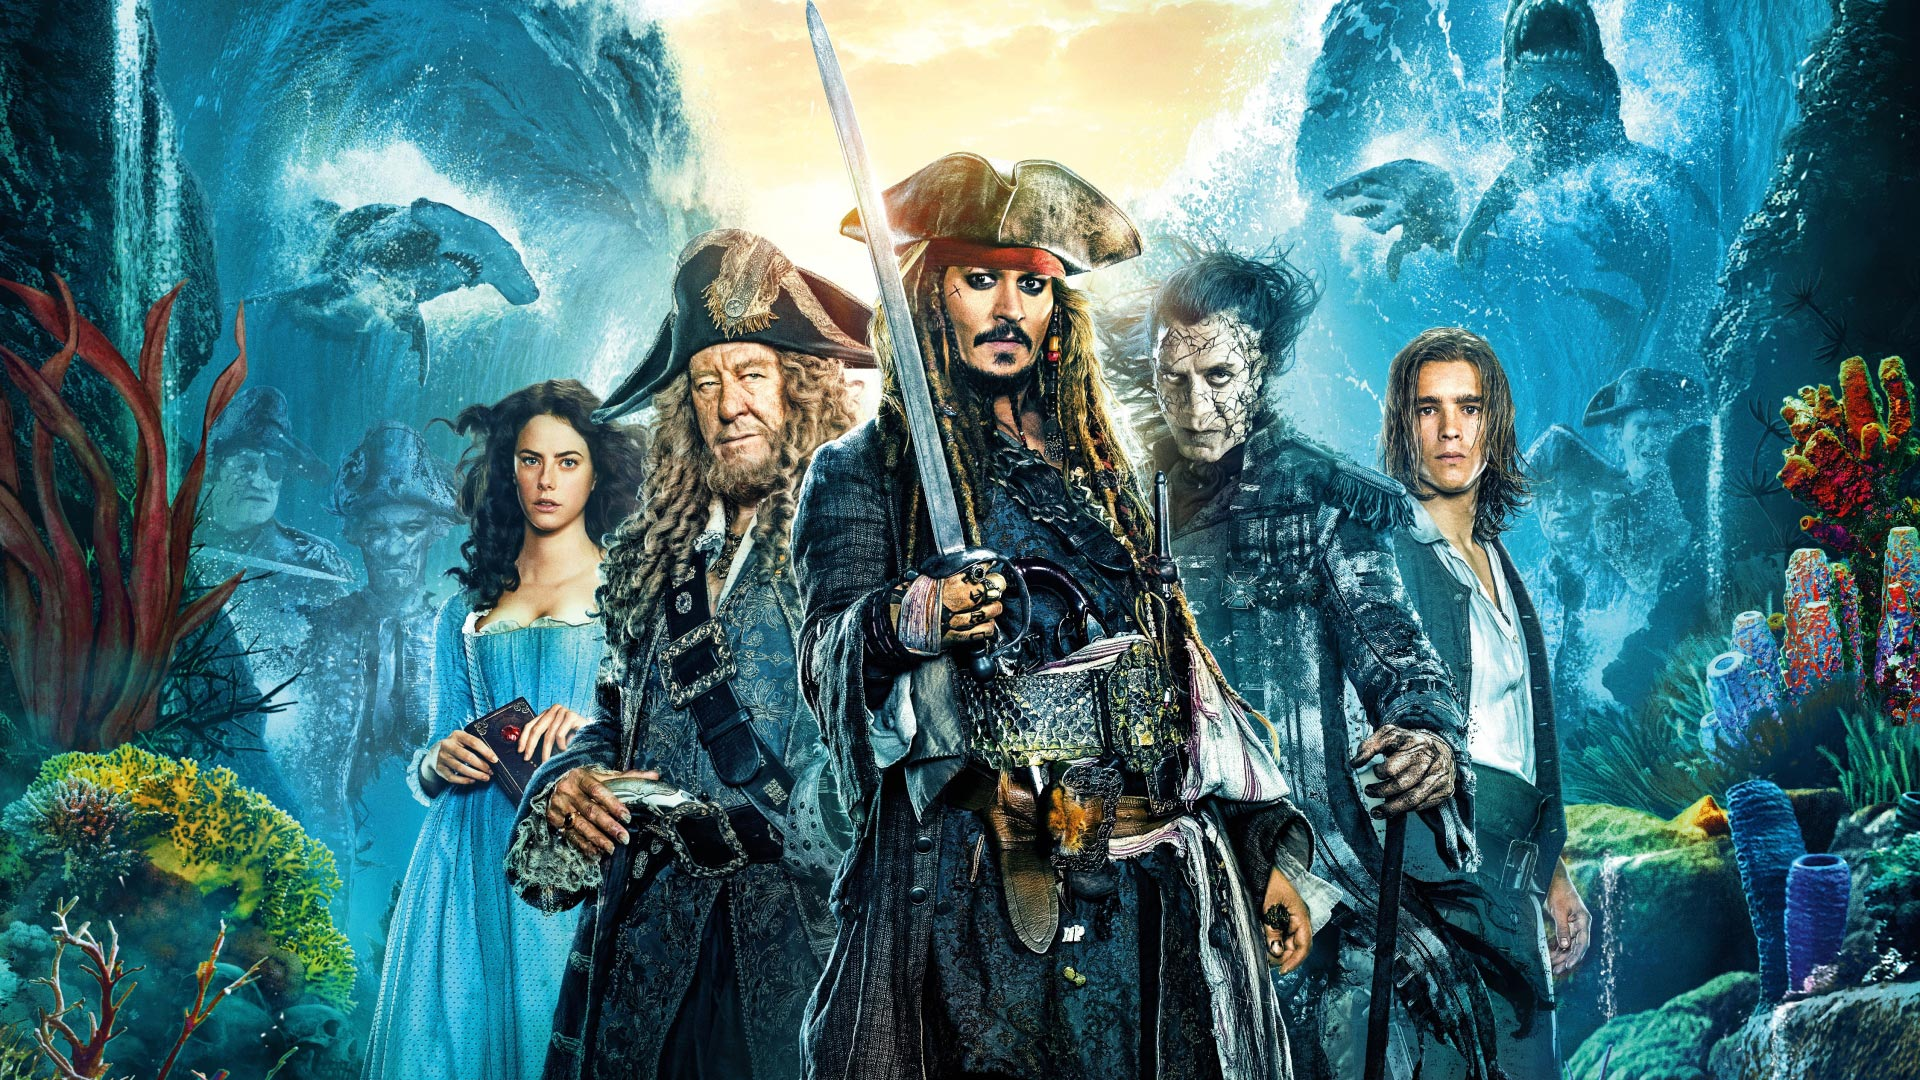 Pirates Of The Caribbean 5 Theme For Windows 10 8 7